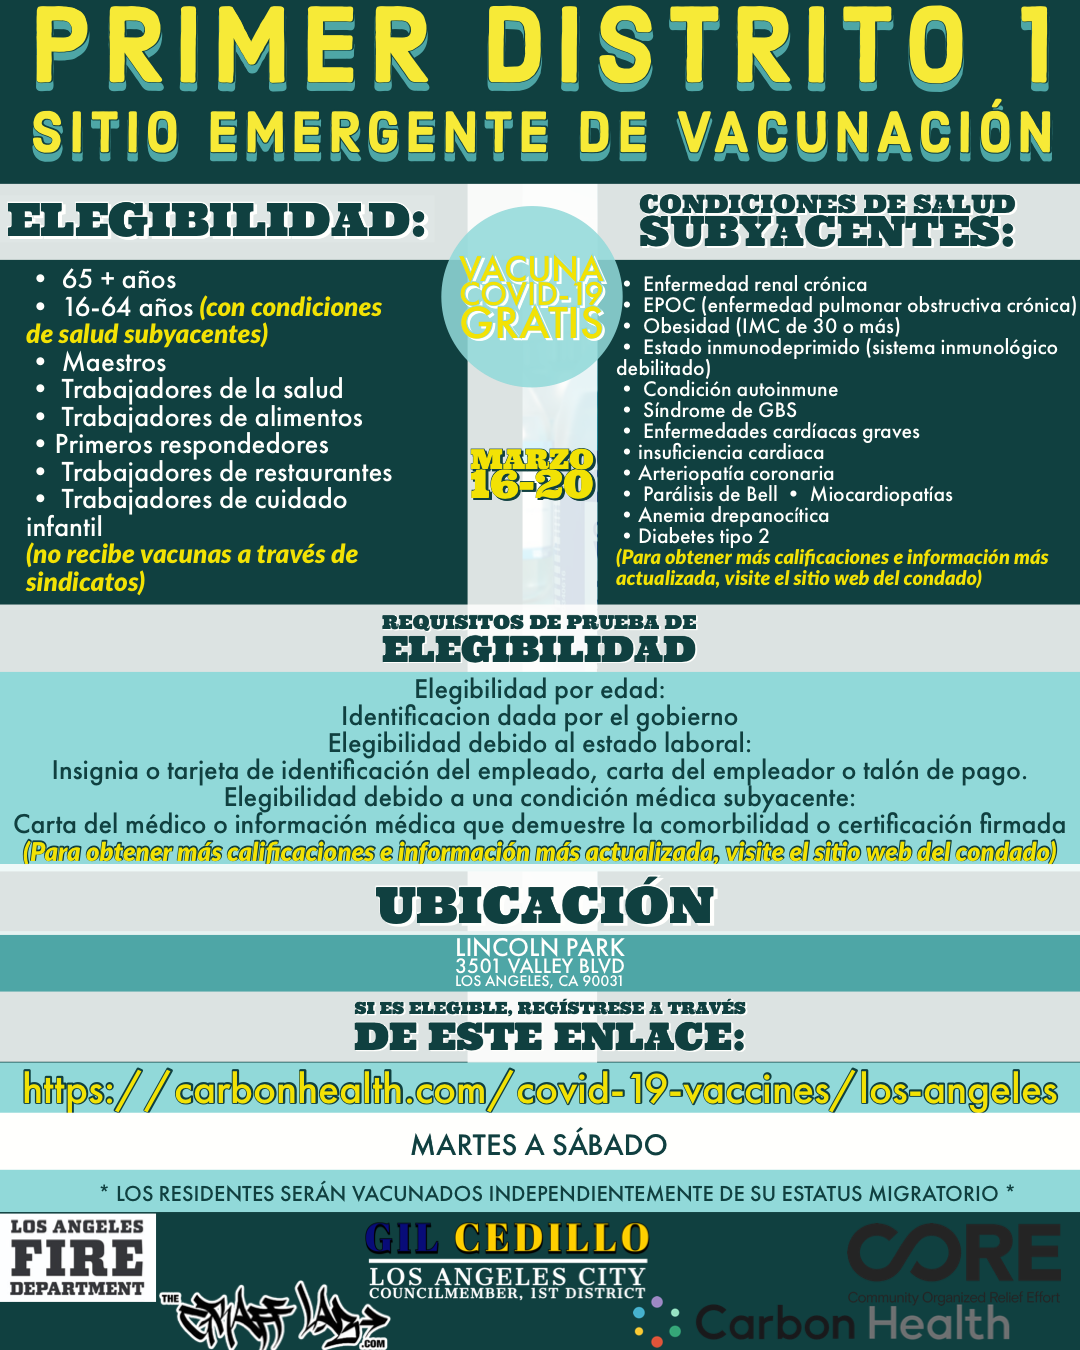 Vaccination Site Flyer - Lincoln Park SPANISH